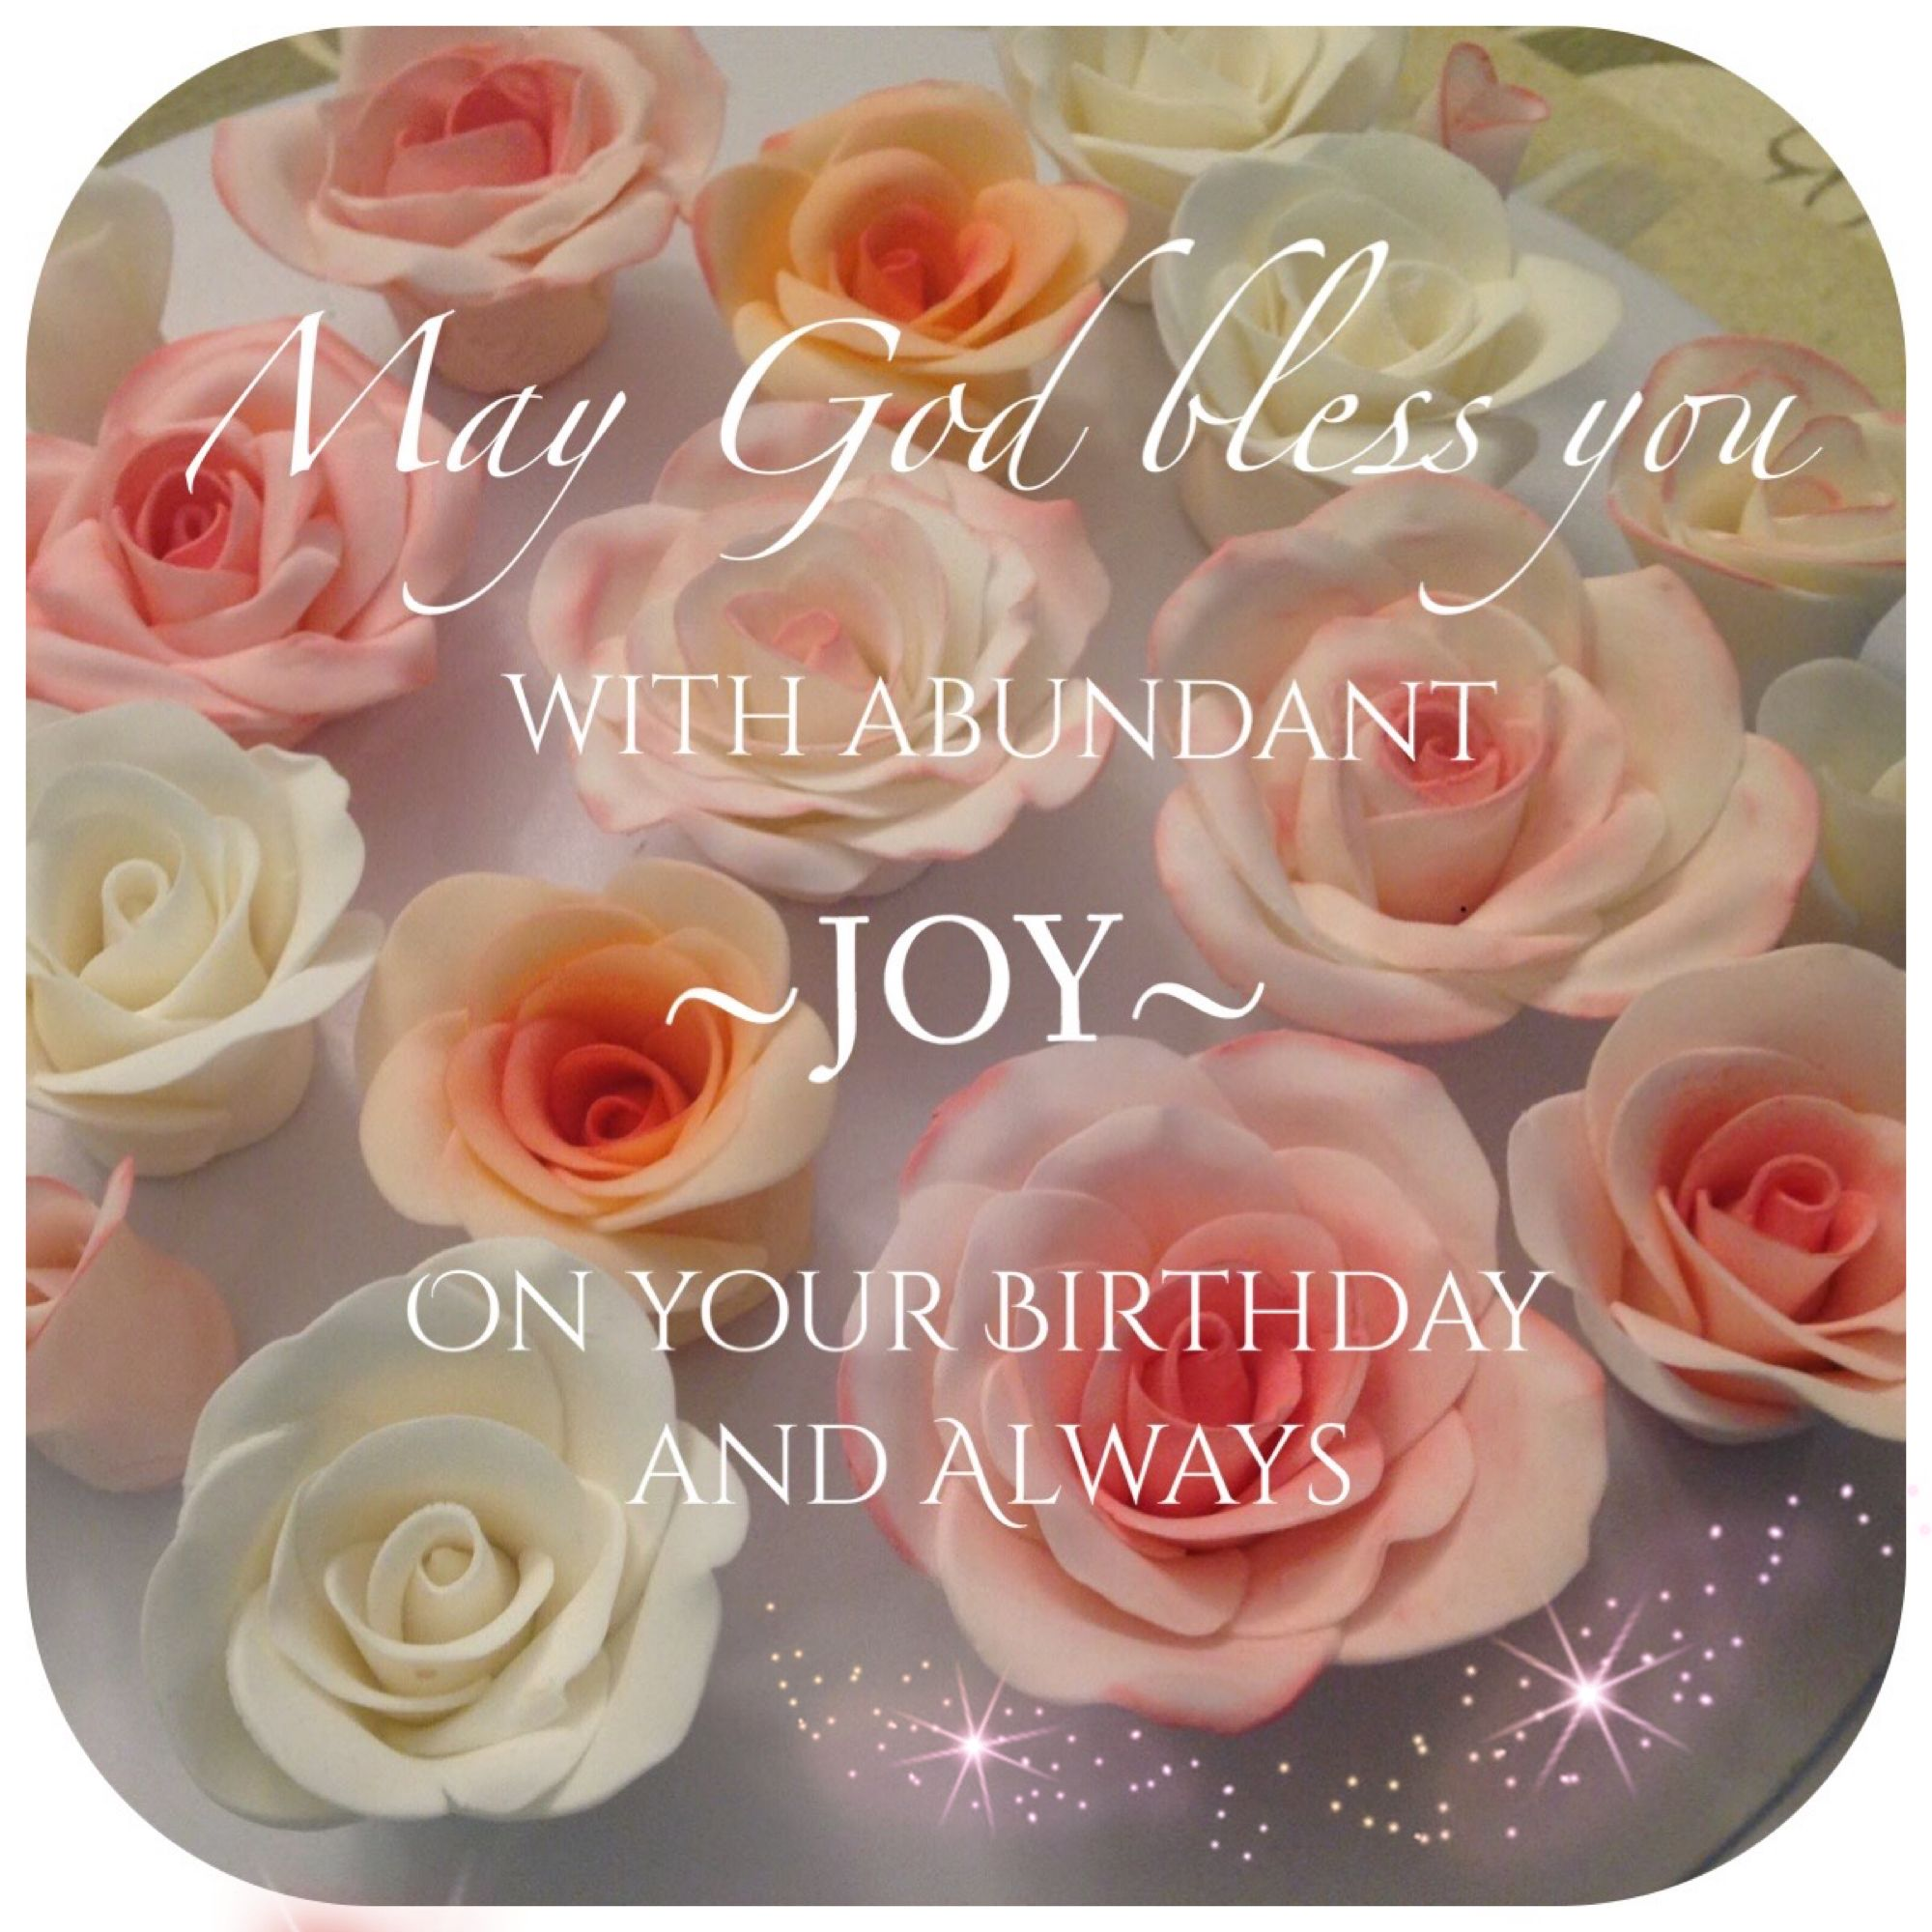 May God Bless You With Abundant Joy On Your Birthday And Always Biblical Birthday Wishes Birthday Blessings Blessings On Your Birthday